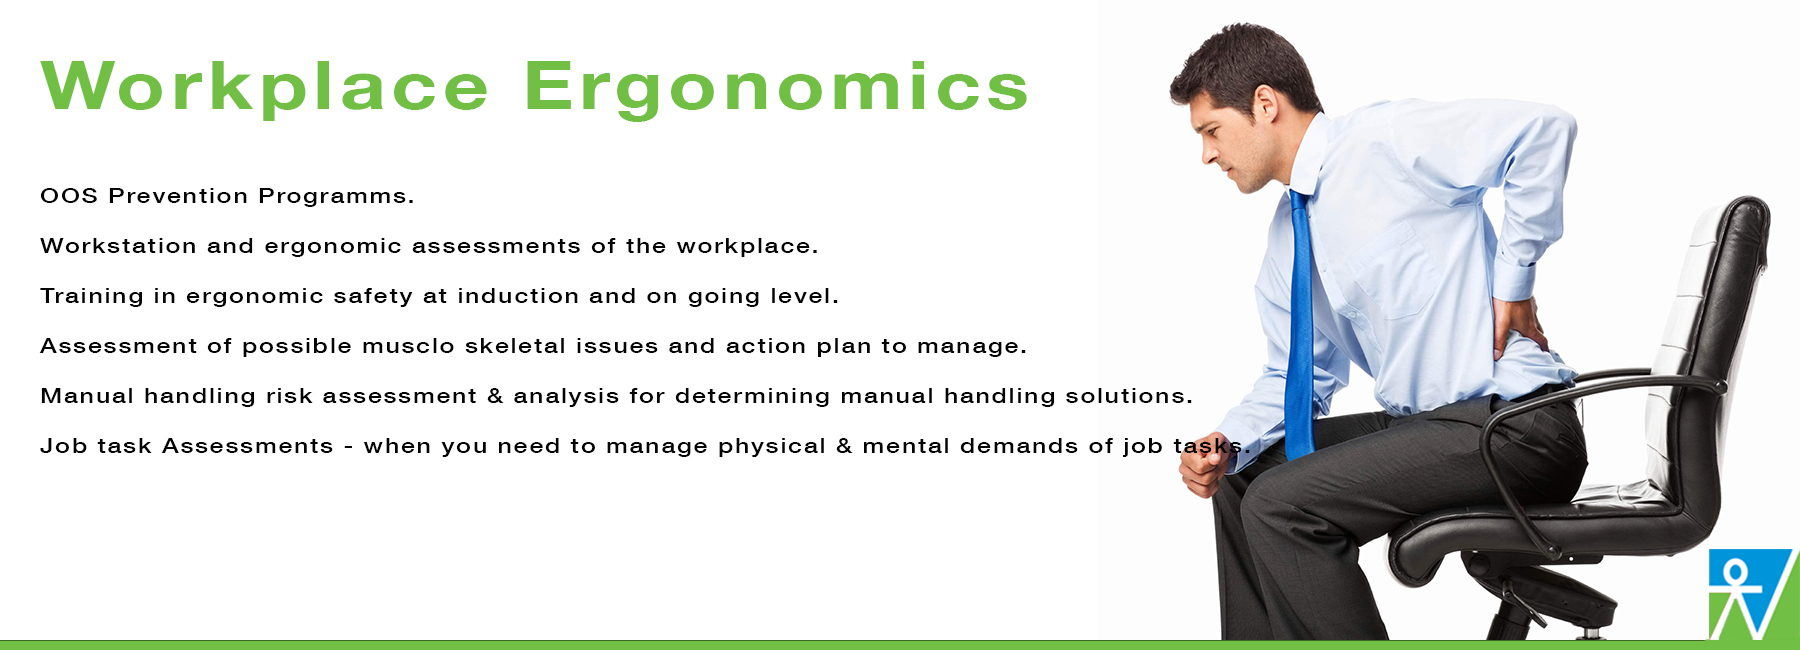 Business Health Services believe that utilising practical ergonomic strategies including training efficiently and safely    manages how people work in their environment Managing ergonomics in the workplace is about reducing risks of ergonomics and manual handling hazards